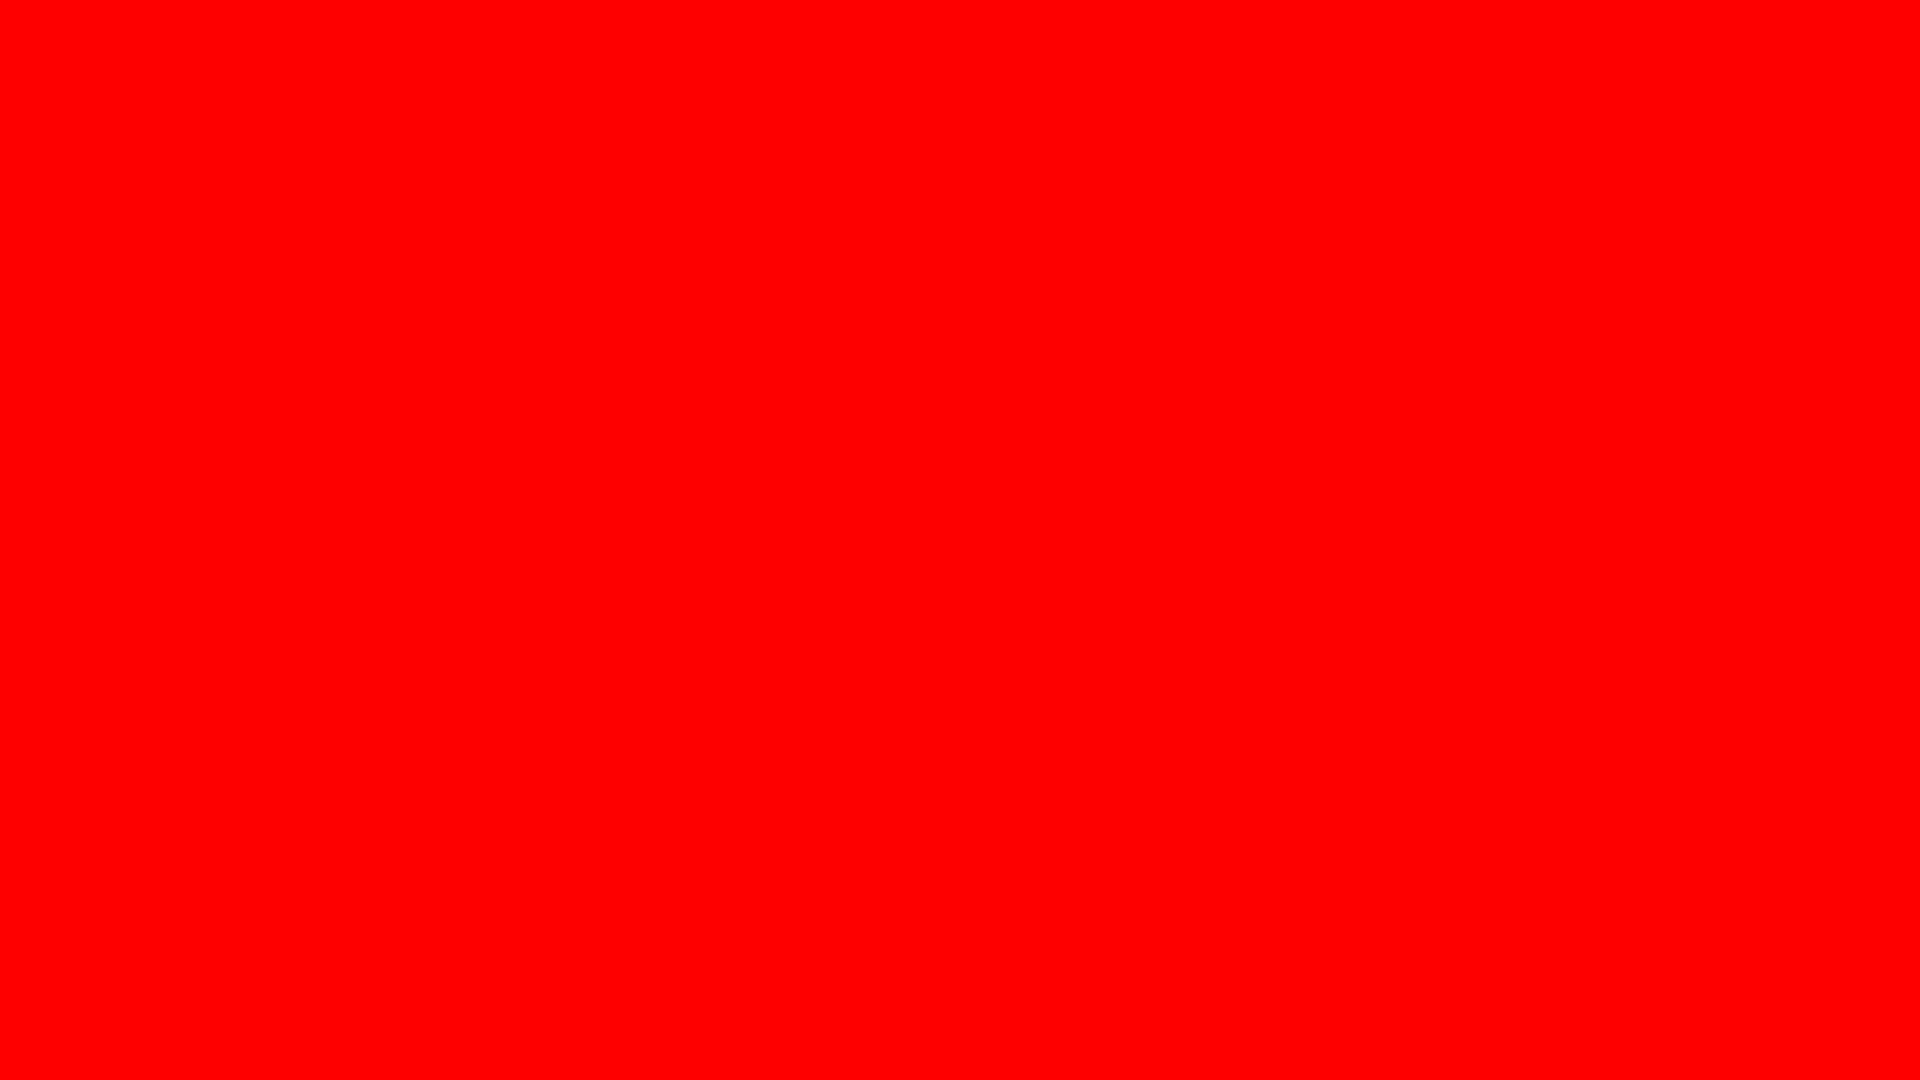 1920×1080-red-solid-color-background